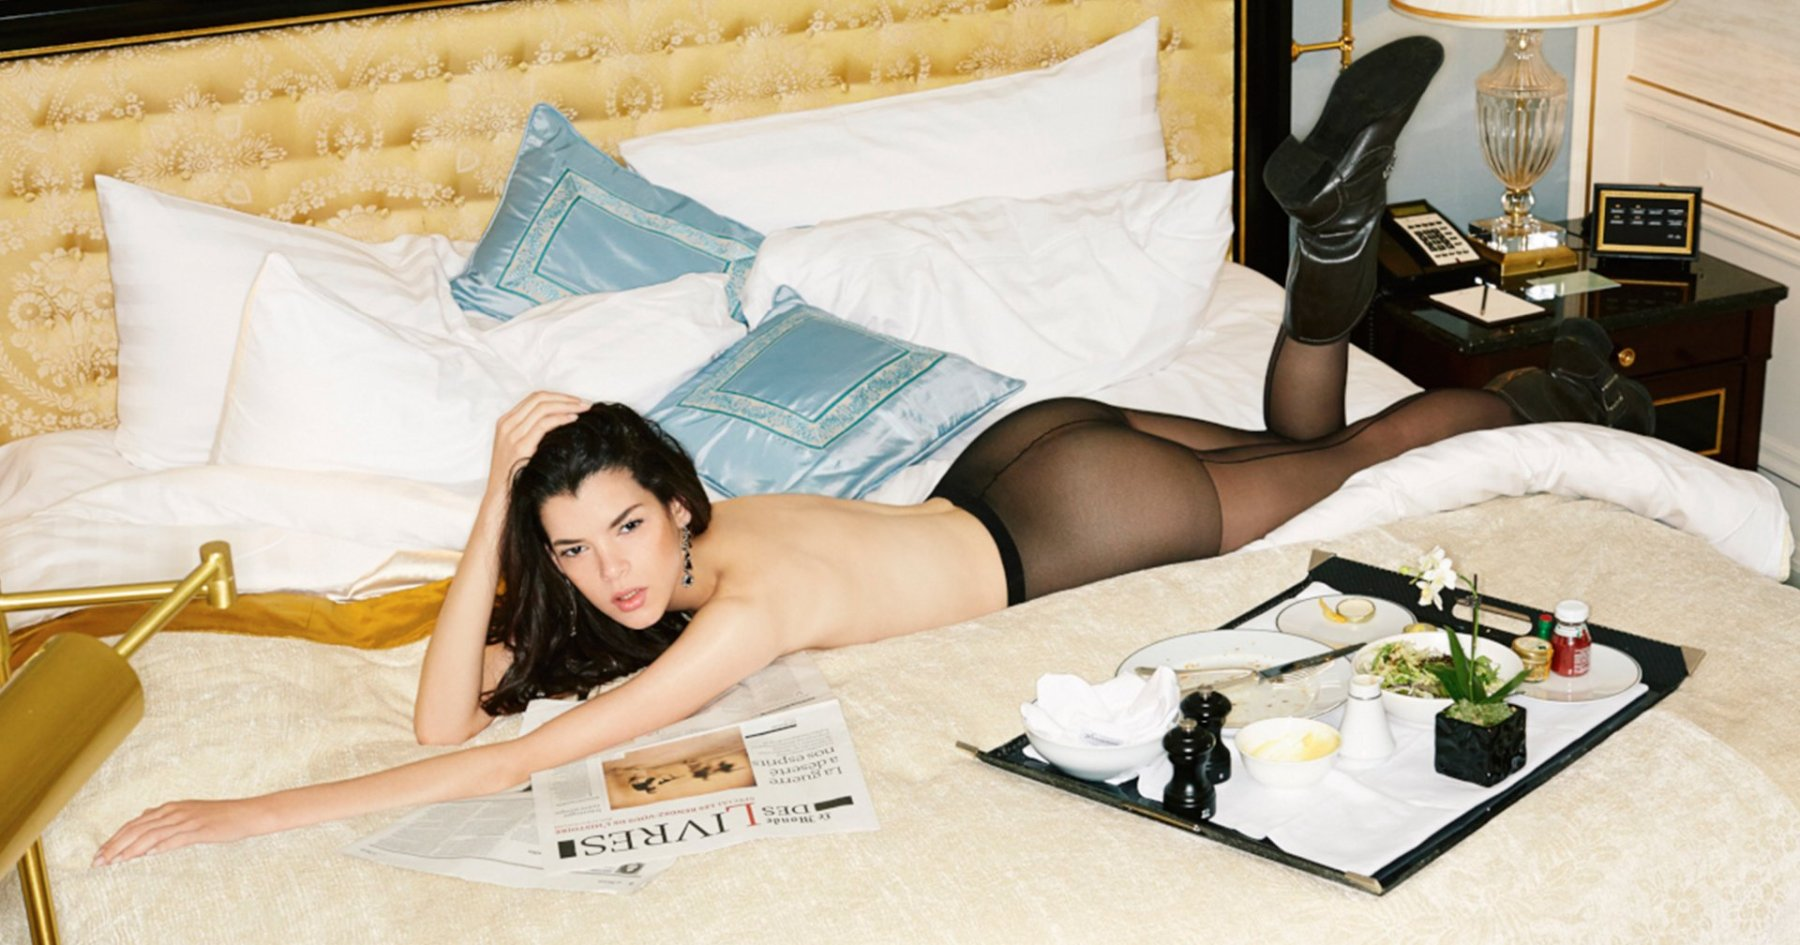 So That's What Models Do in Hotel Rooms…